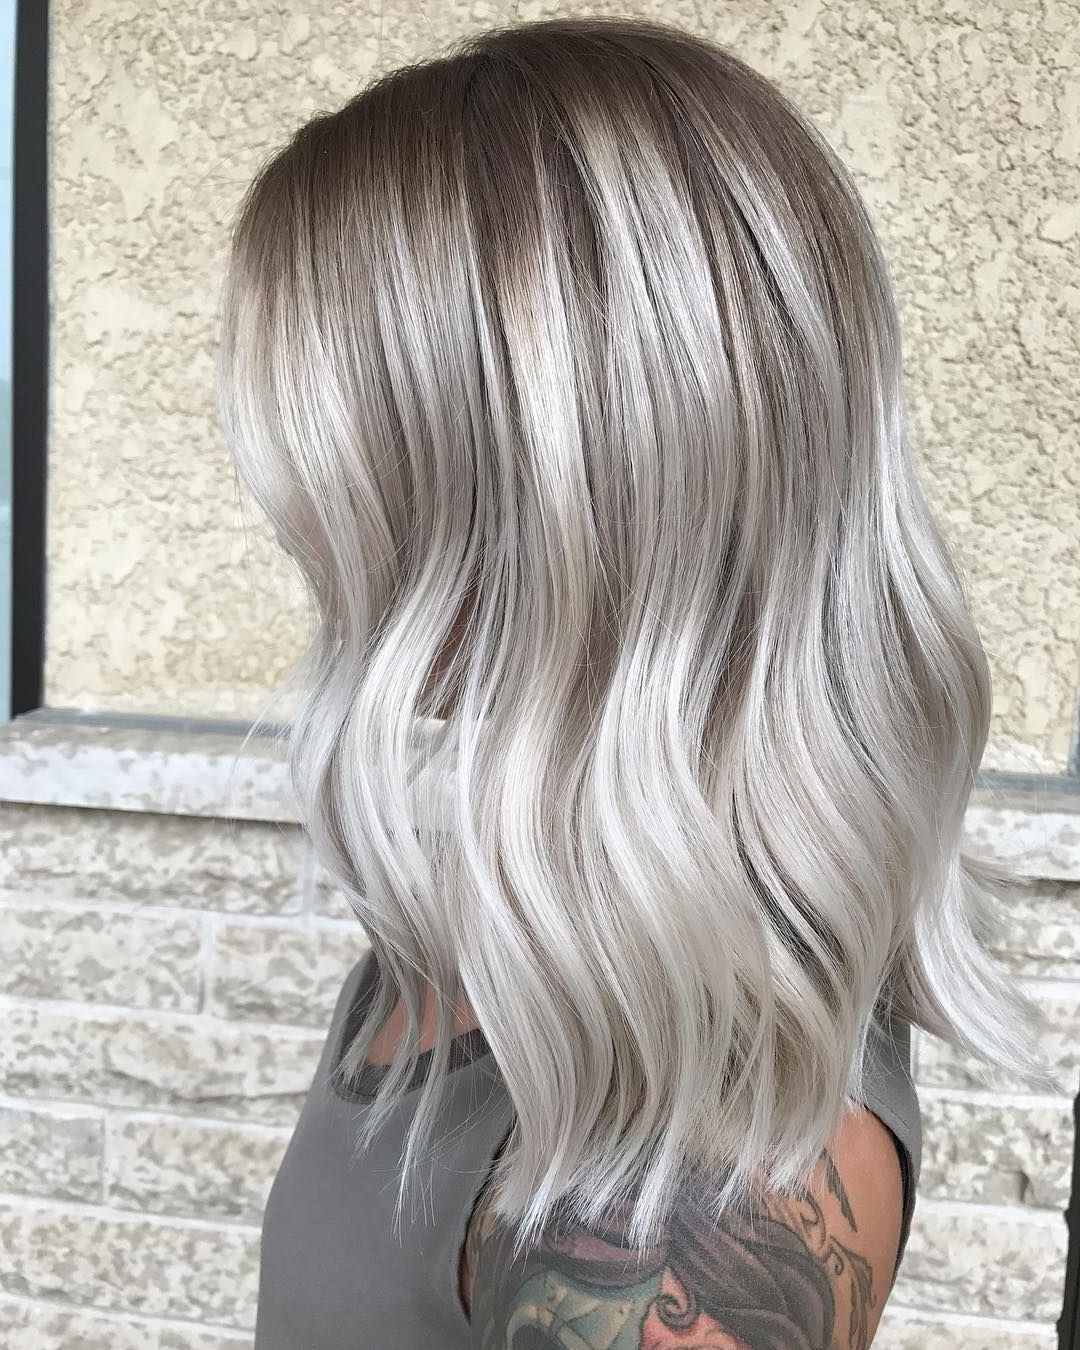 Preferred Ash Blonde Bob Hairstyles With Light Long Layers Pertaining To Hair Cuts : Brown To Ash Blonde Ombre Short Hair Dark With (View 17 of 20)